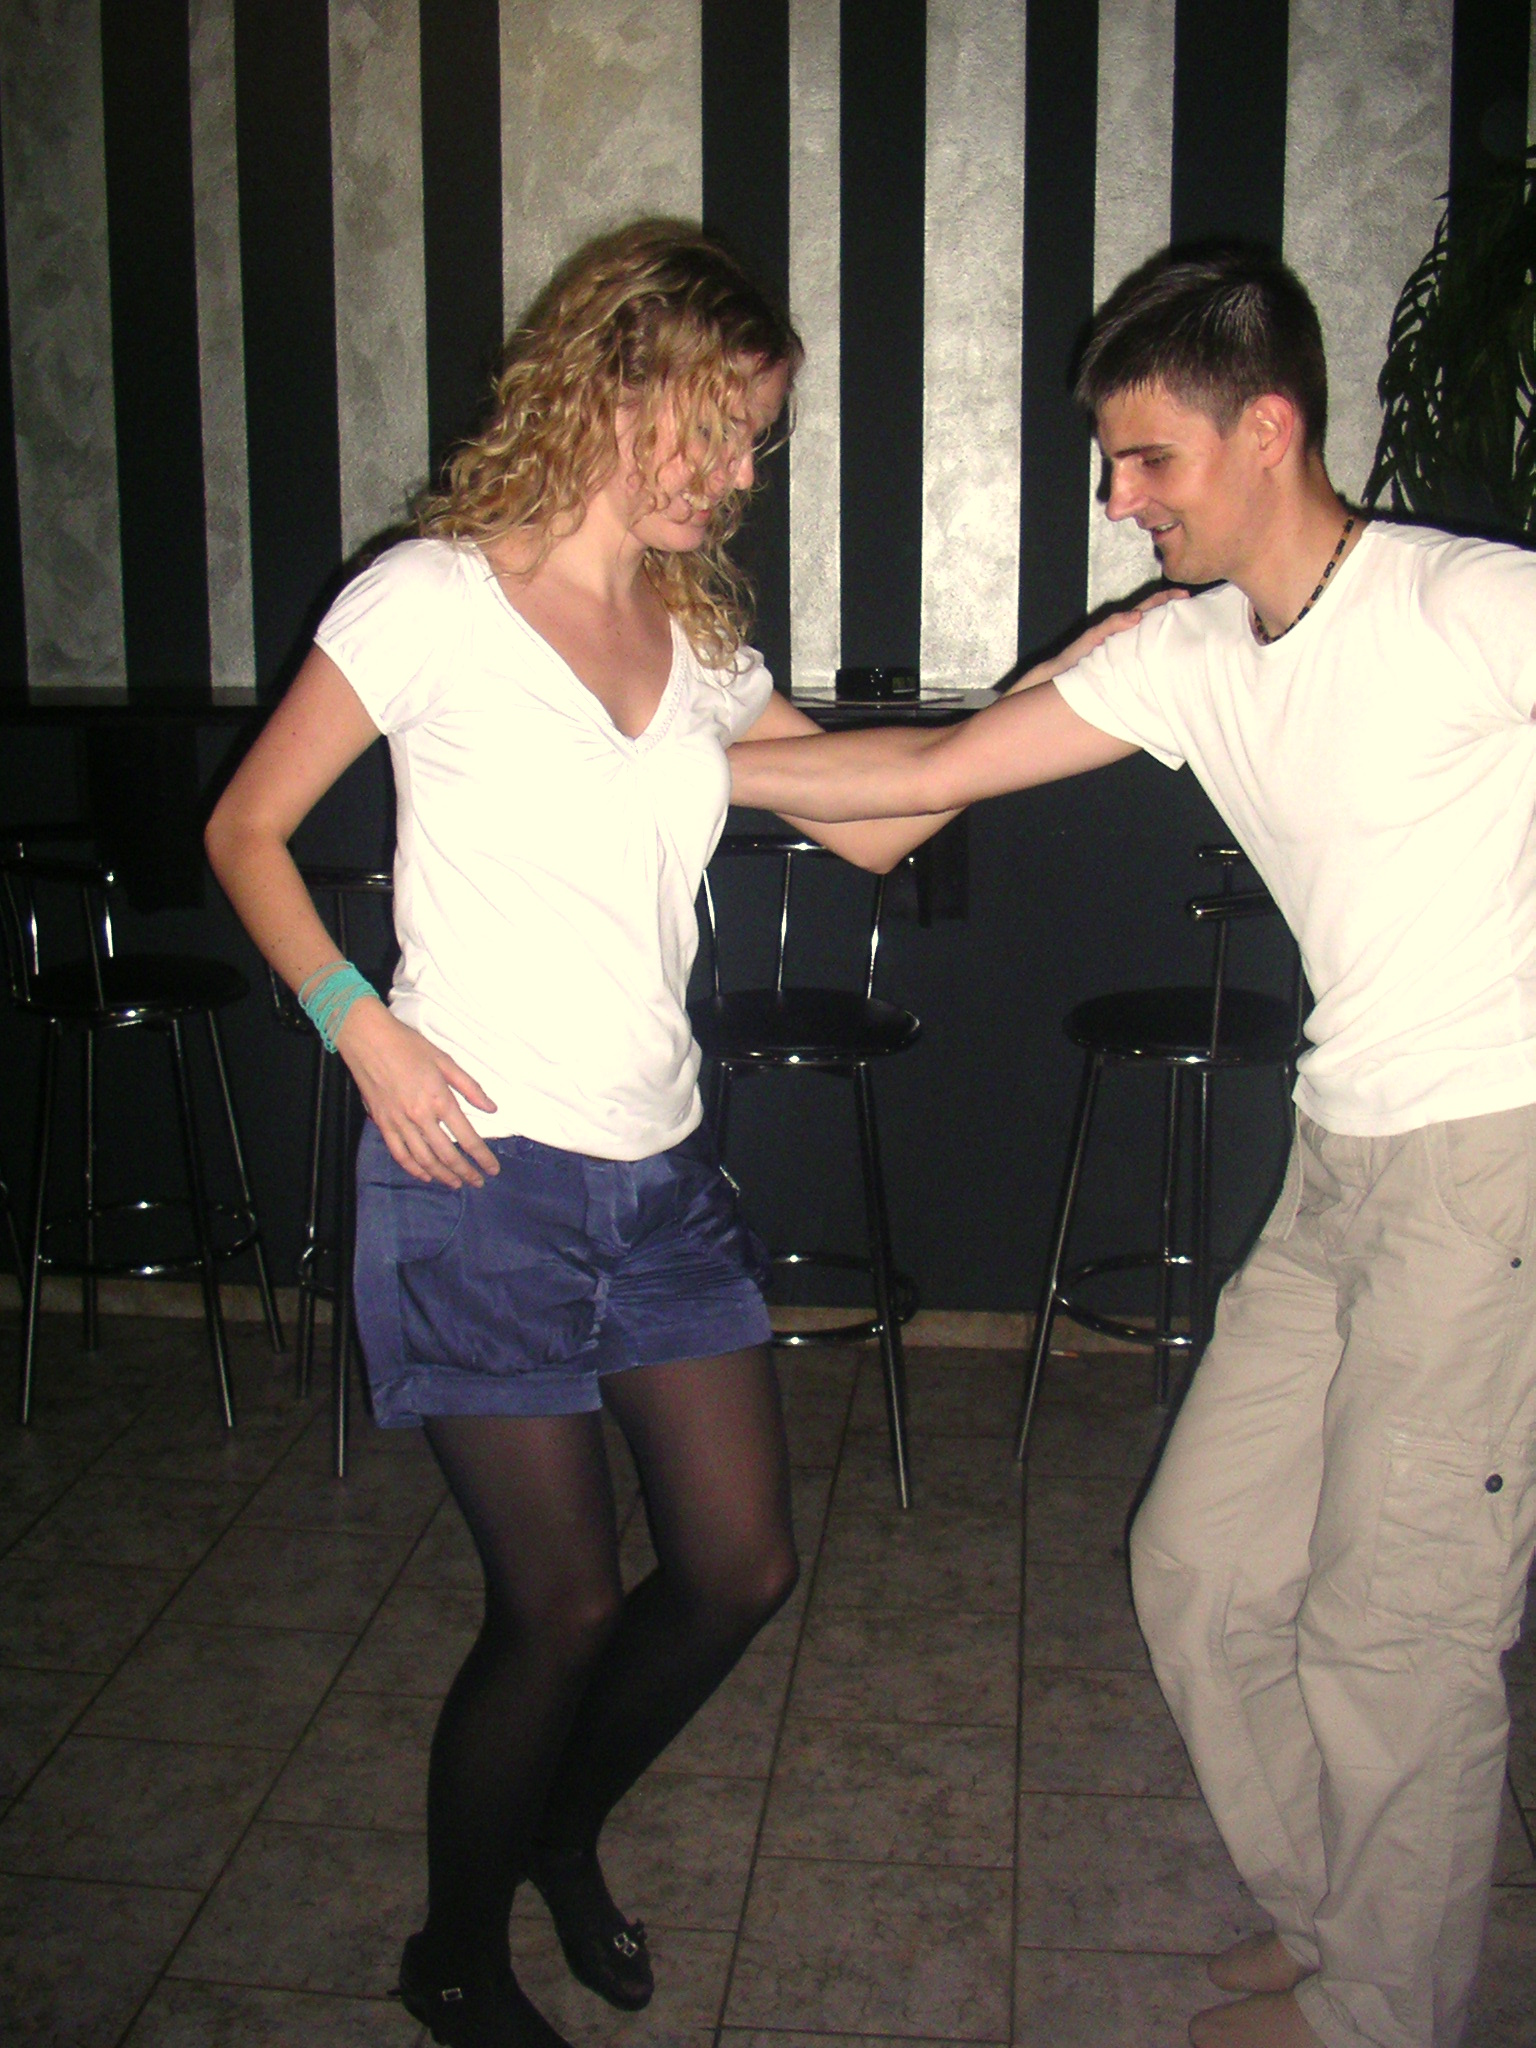 party_v_barvach_2_20111111_1115730951